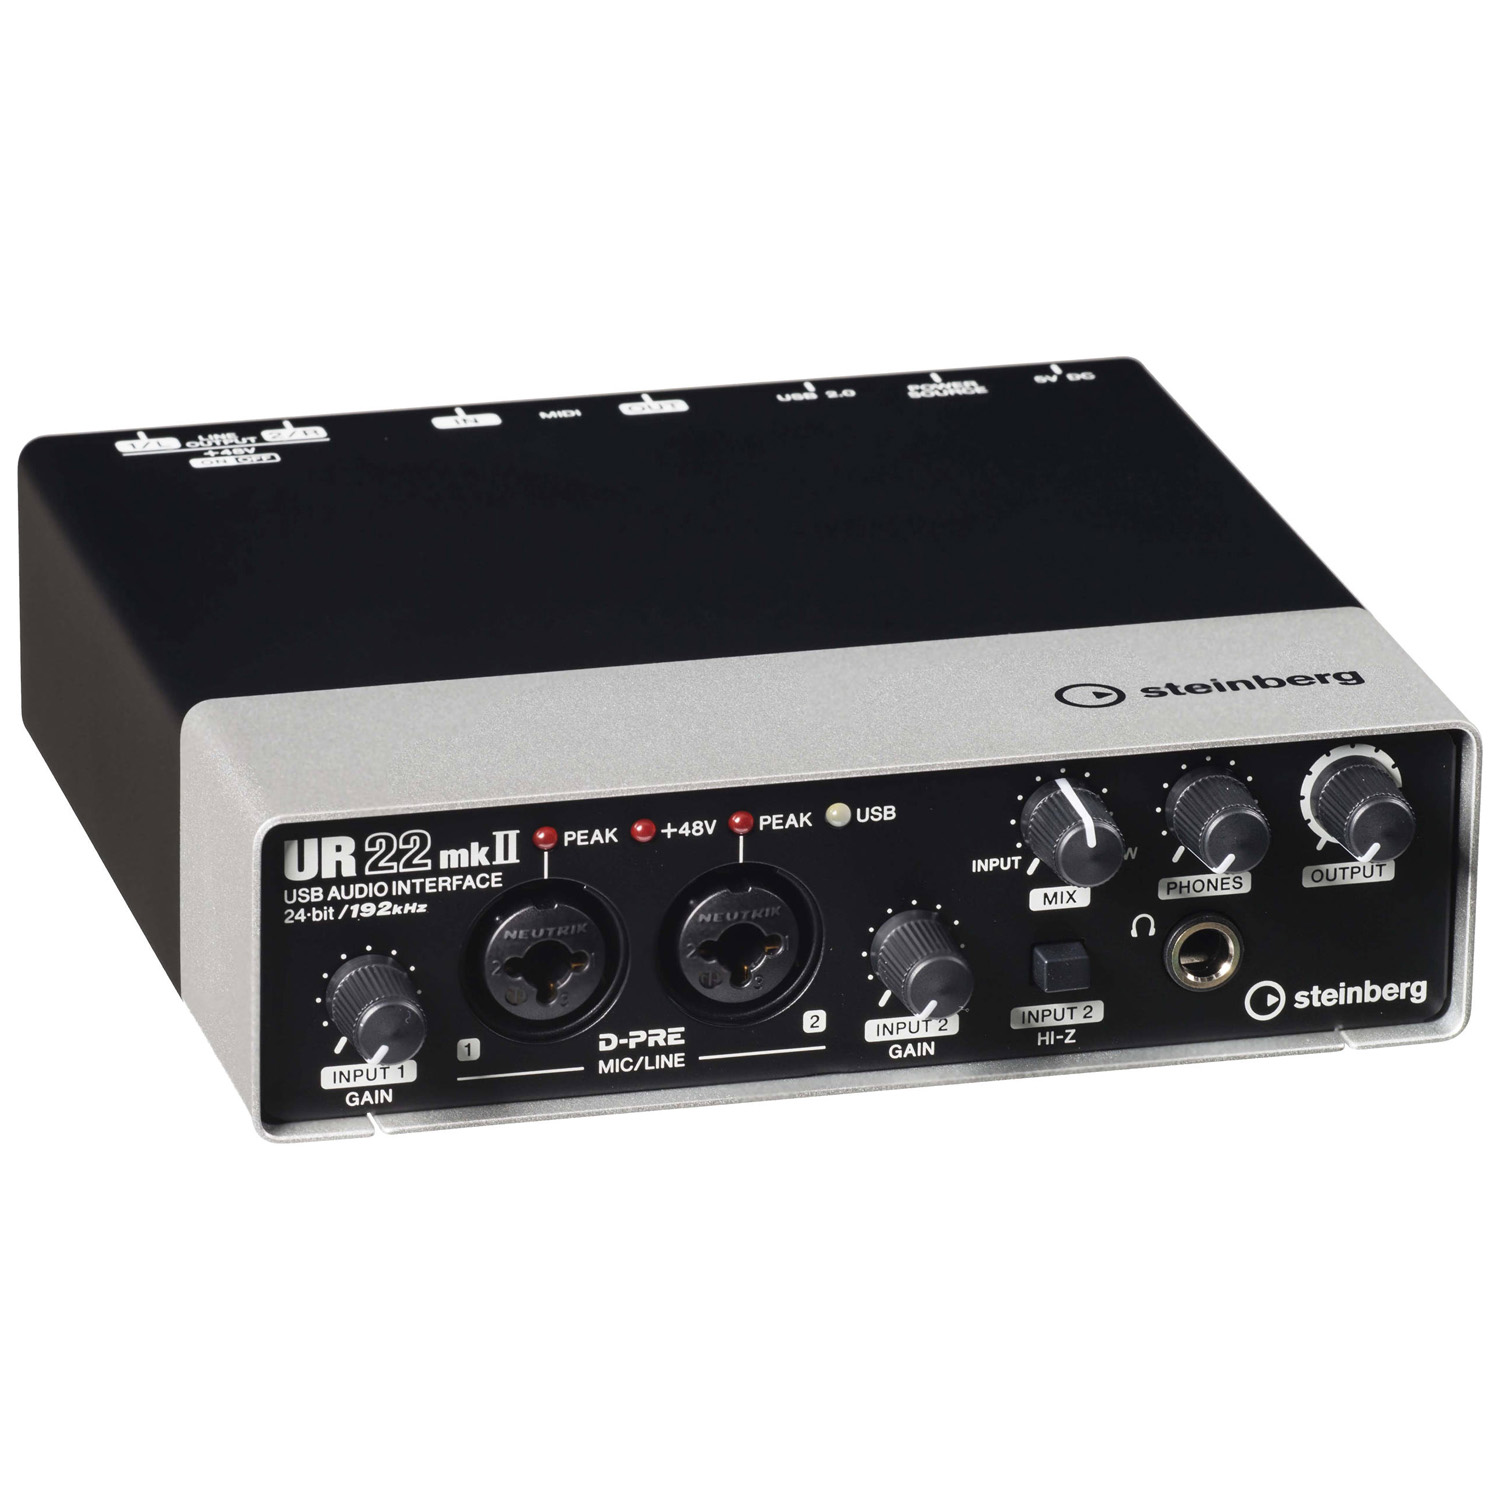 Musicworks Home Studio Recording Usb Interfaces Firewire Interface Steinberg Ur22 Mkii Audio